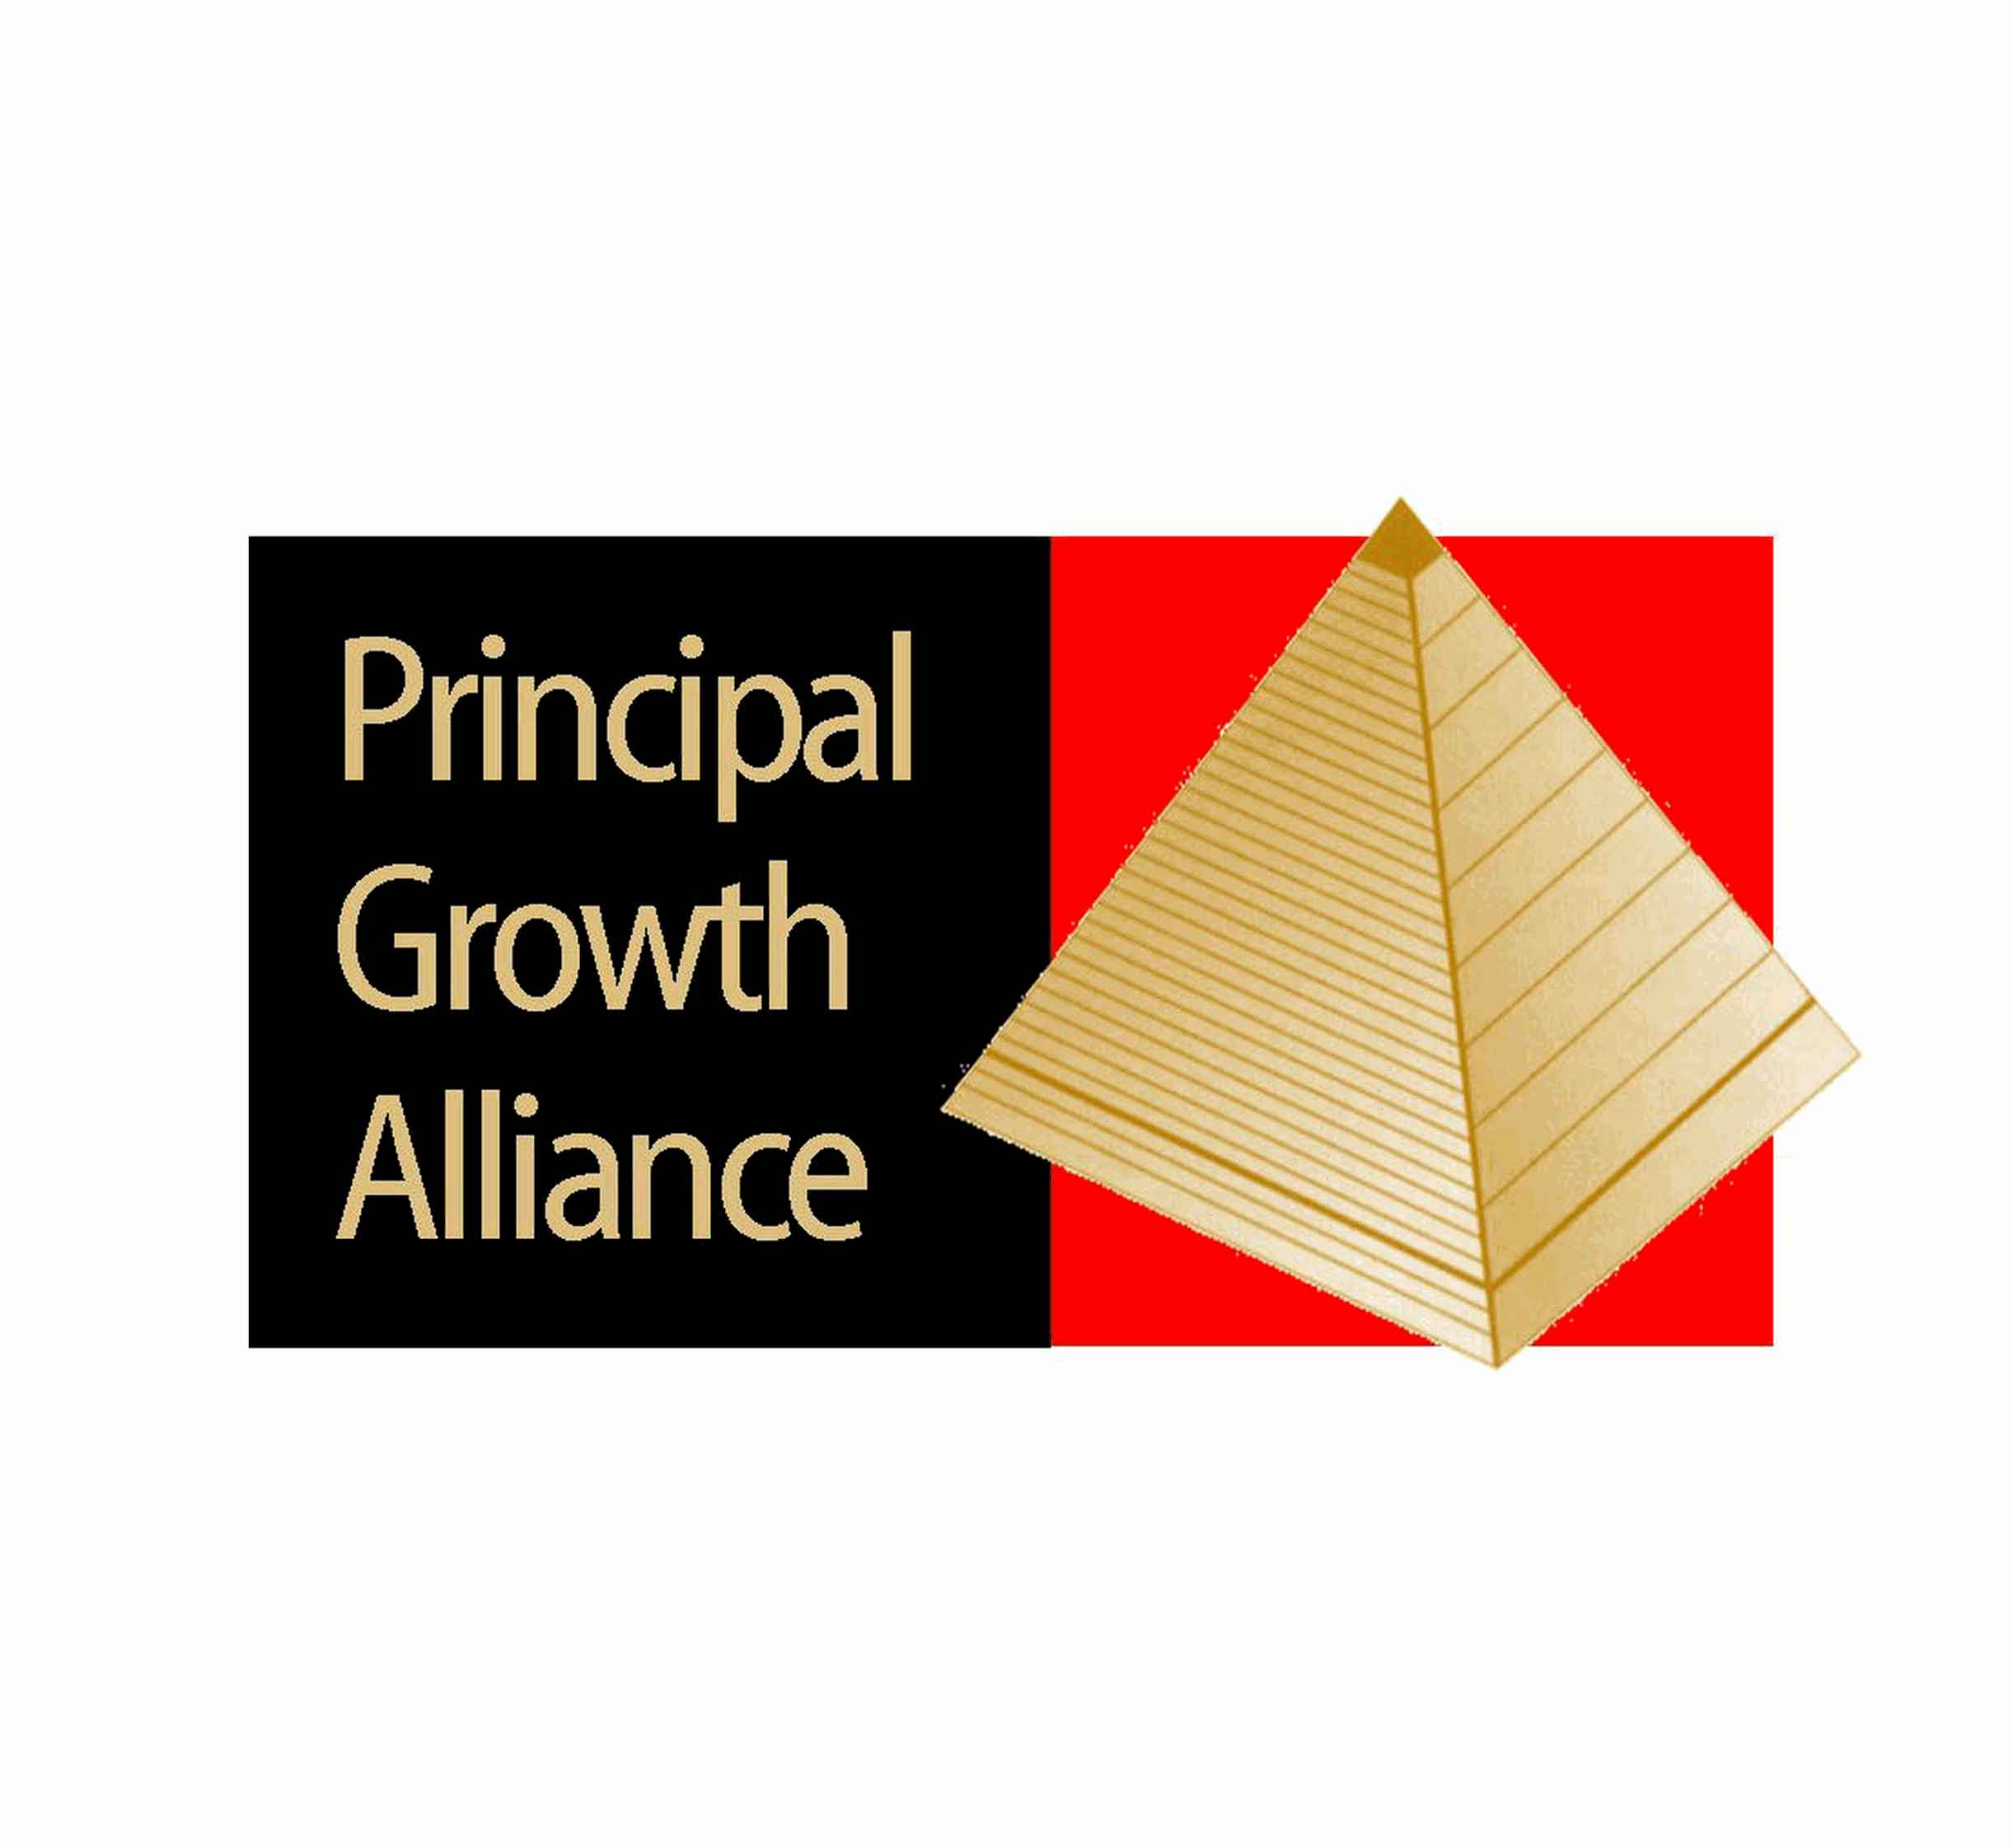 Principal Growth Alliance, logo by New Paradigm graphic design, Santa Rosa, CA